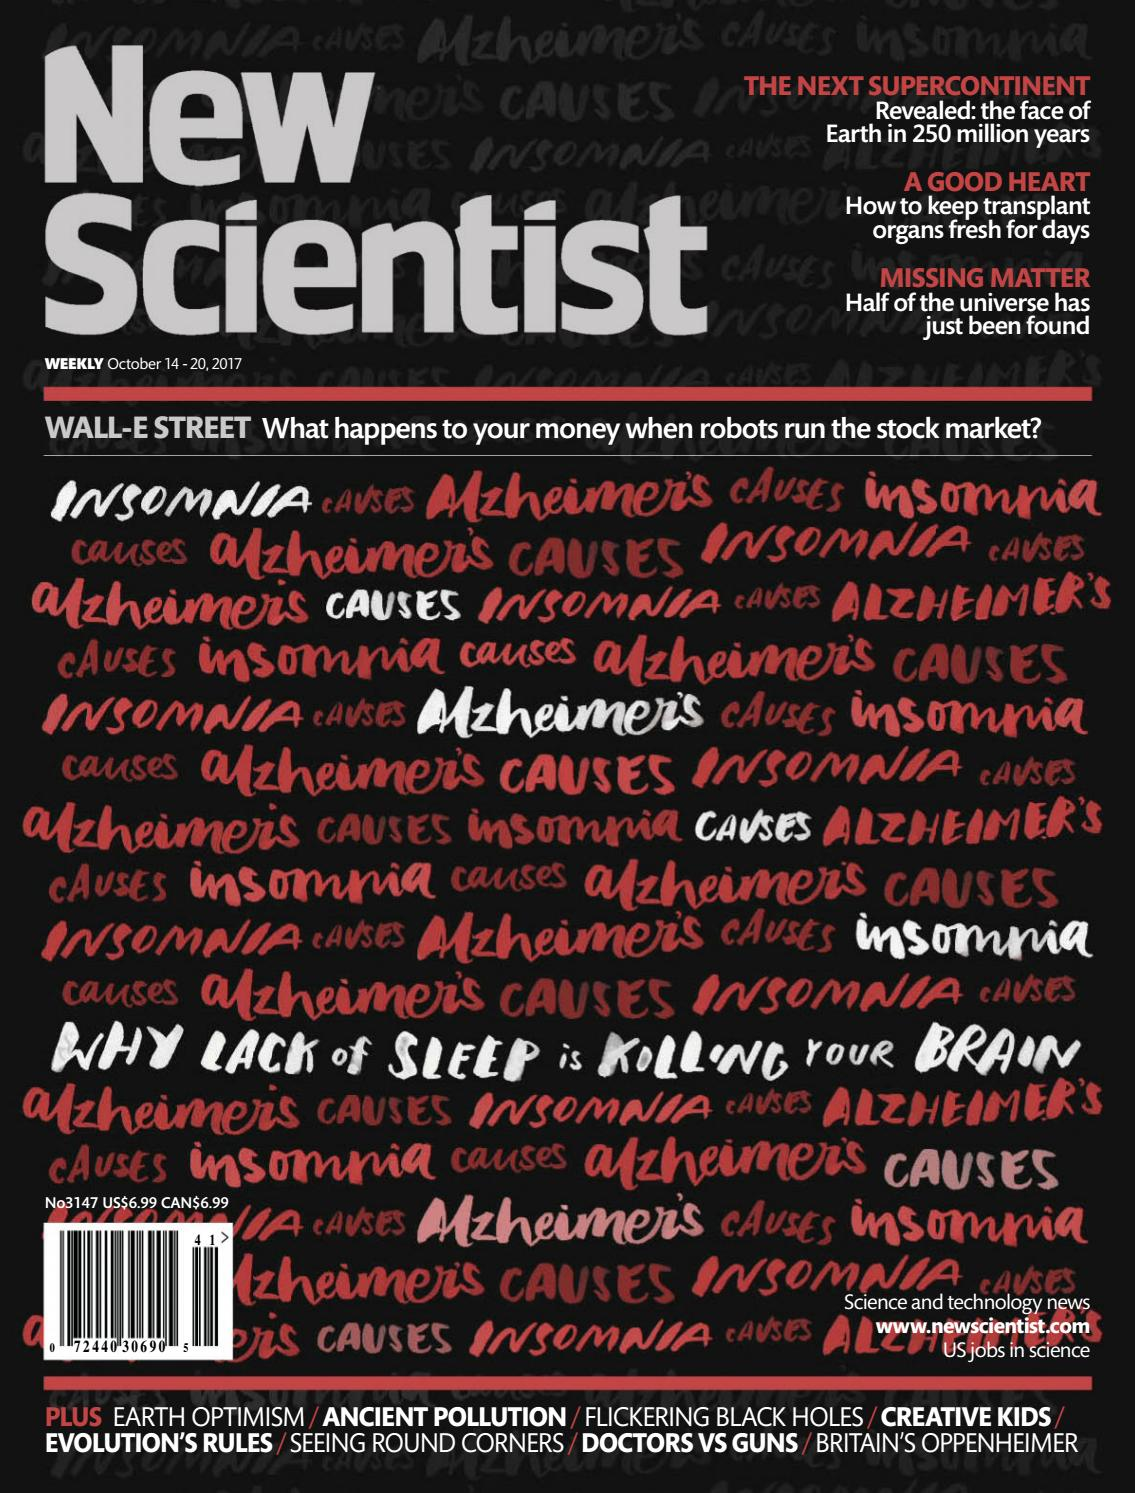 New scientist by BillyJeanne - issuu